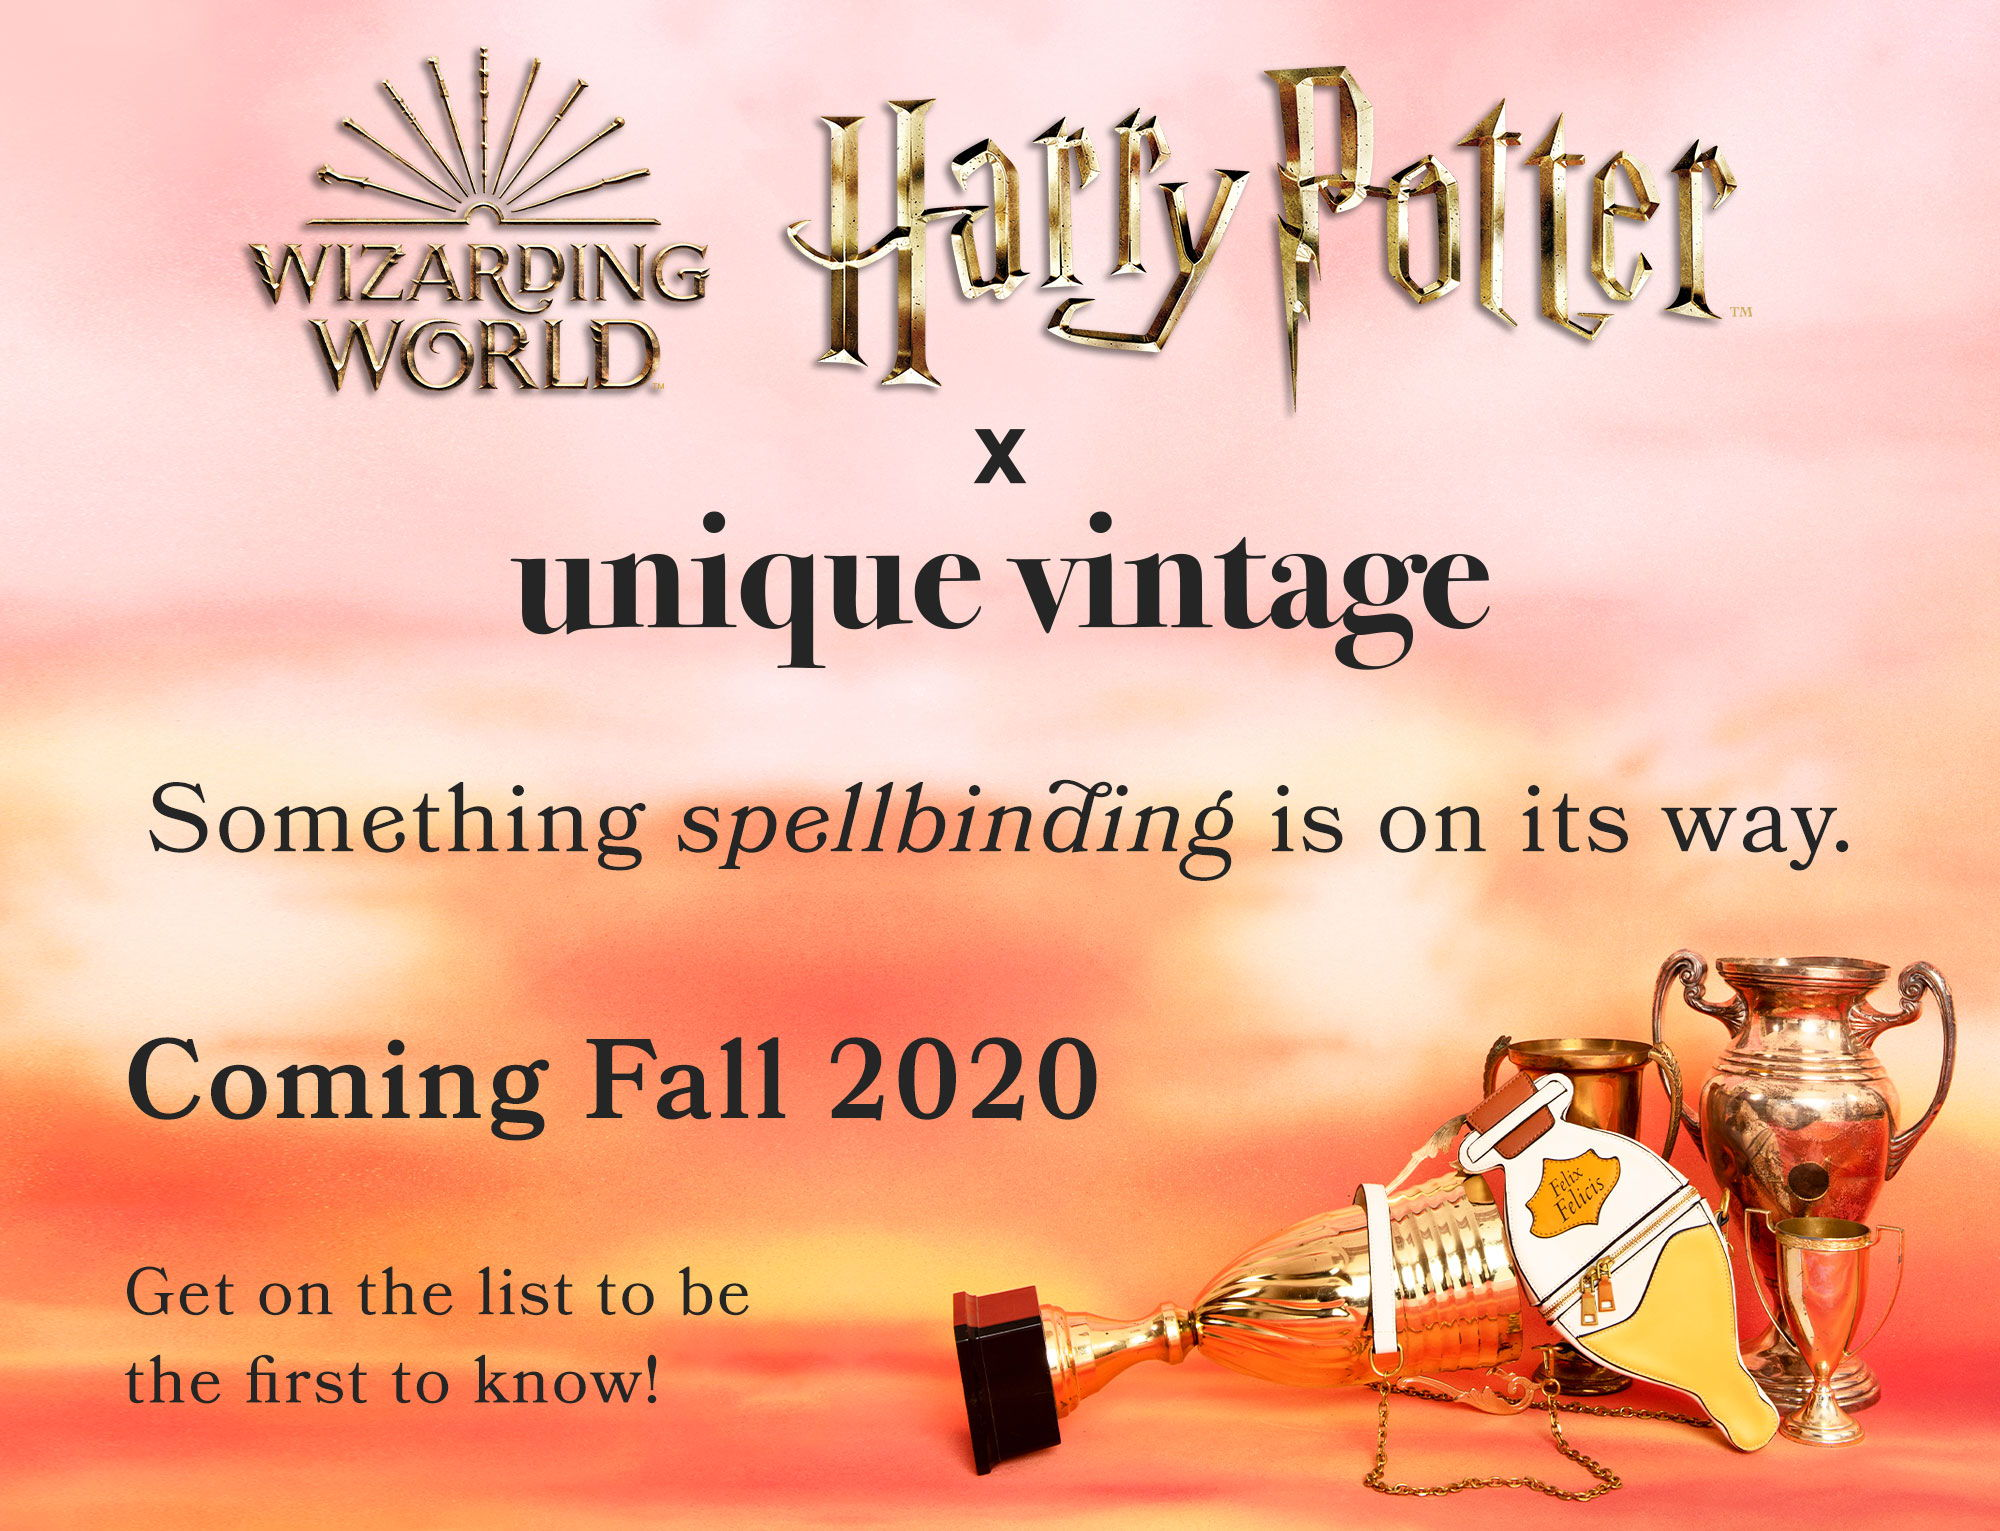 Harry Potter x Unique Vintage: Coming Fall 2020